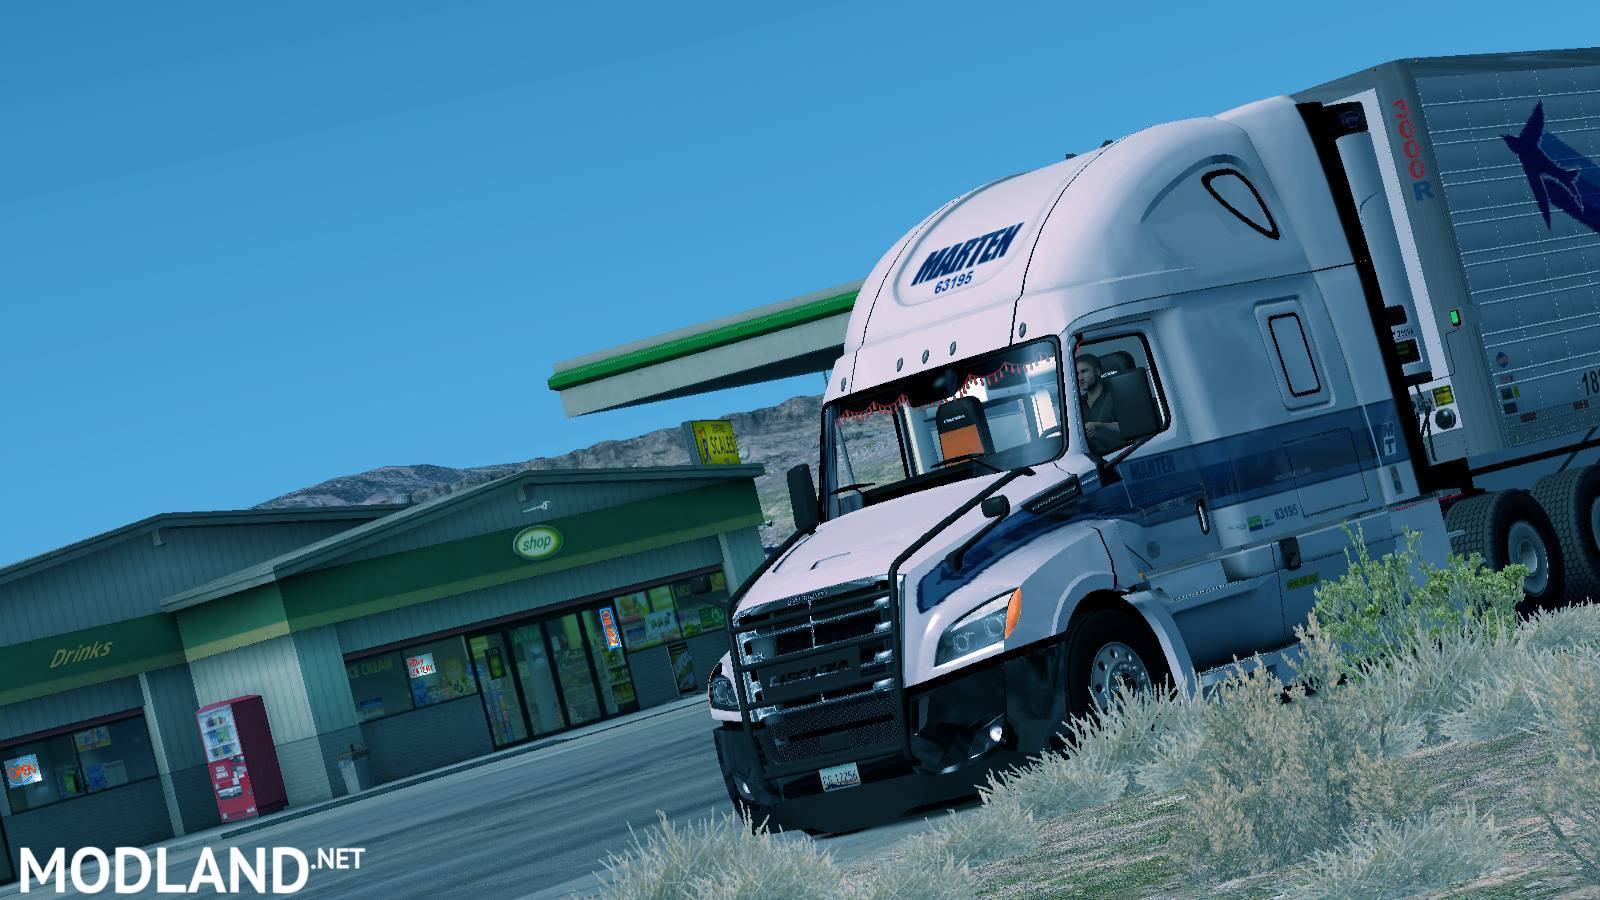 Skin Marten Transport of Freightliner Cascadia 2018 mod for American